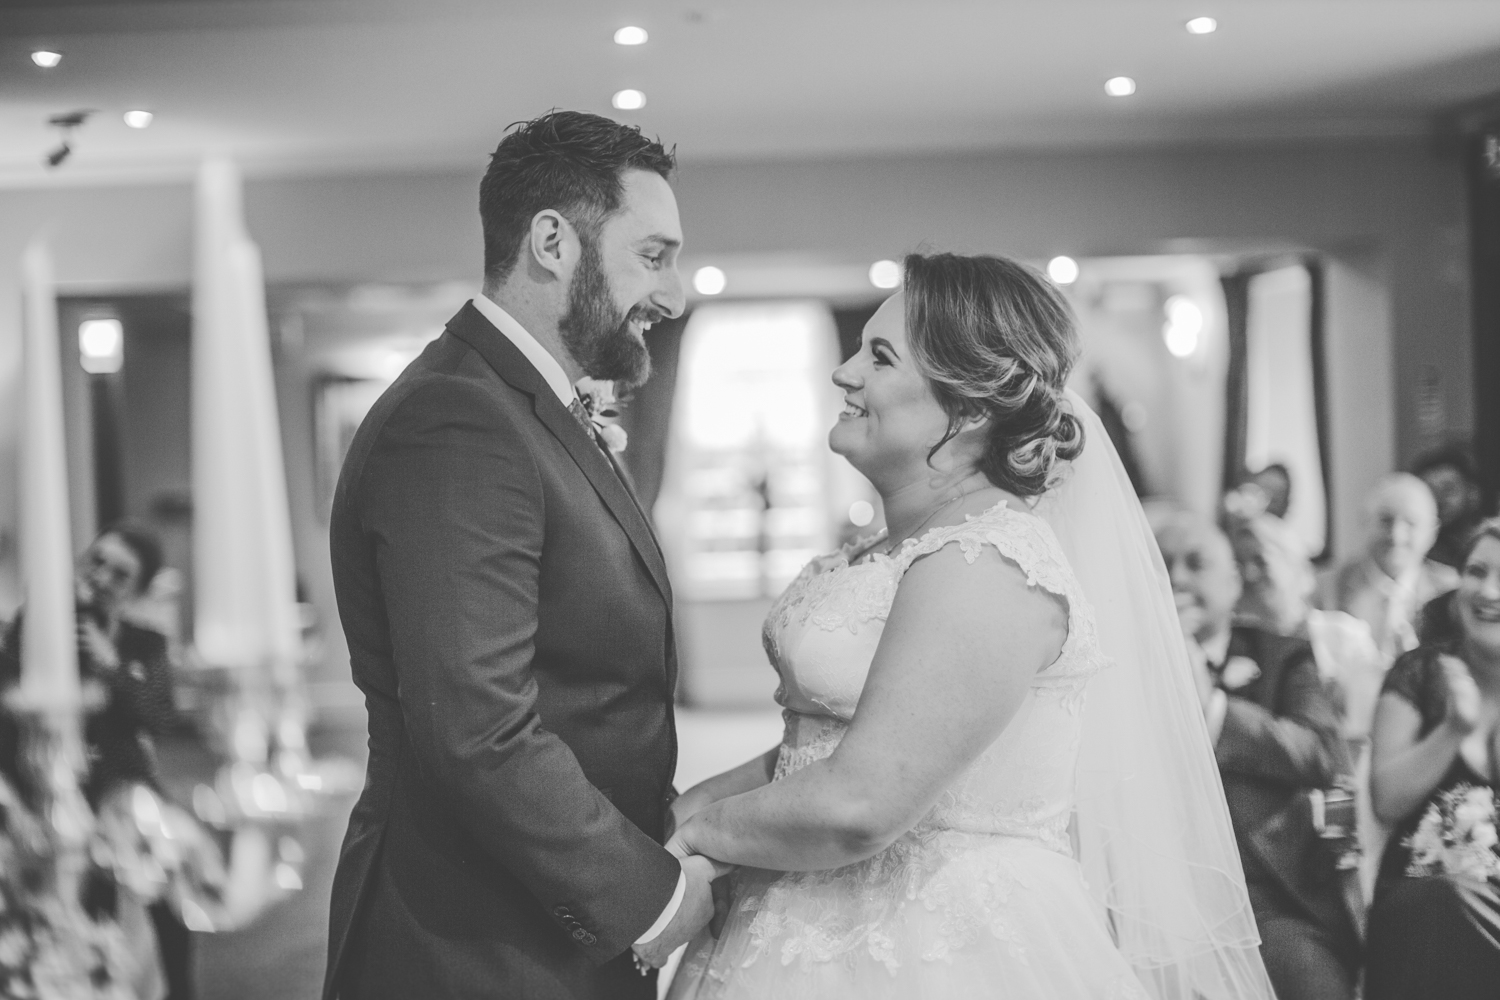 whitley hall sheffield quirky wedding photography-30.jpg